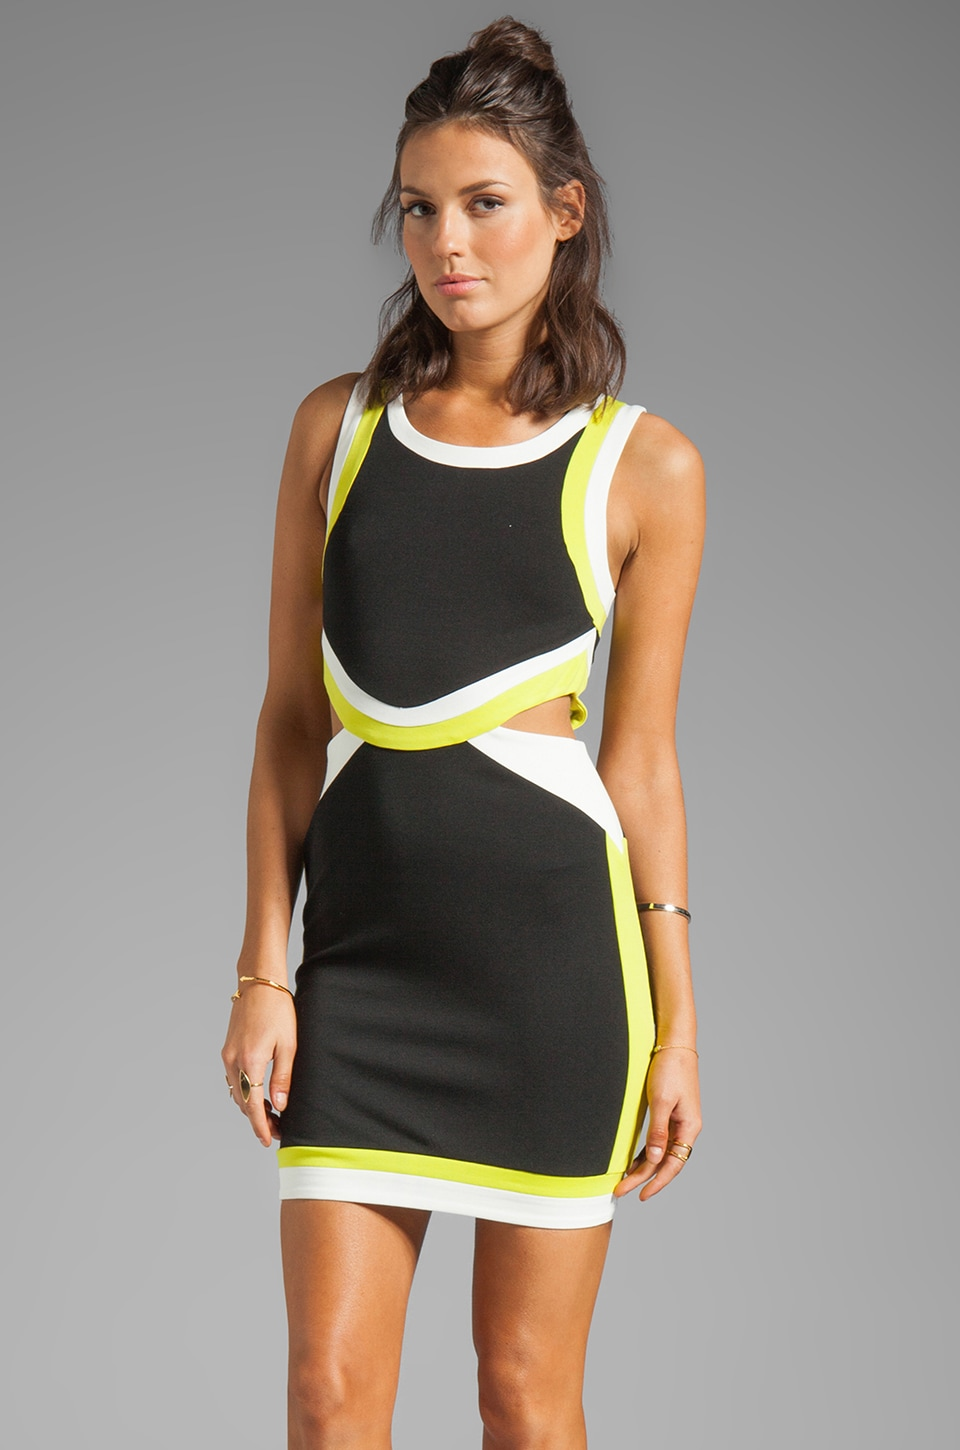 Bardot Scuba Contrast Dress in Black/Lime/White